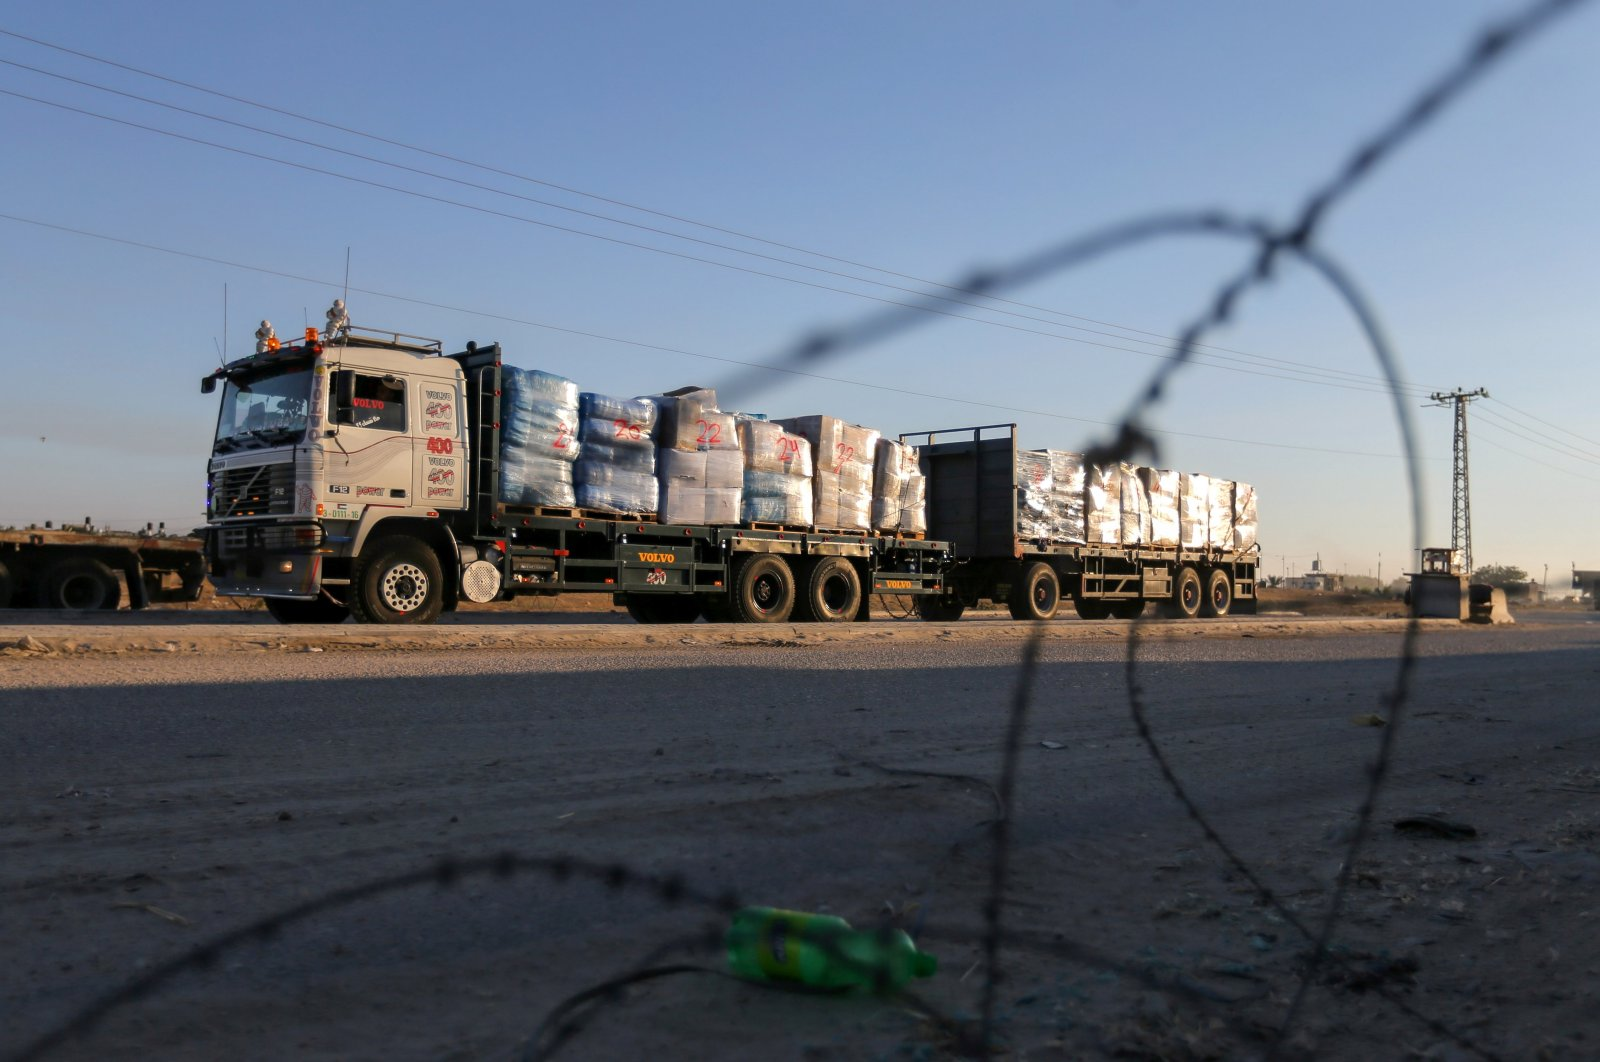 A truck carrying clothes for export is seen at Kerem Shalom crossing in Rafah in the southern Gaza Strip, June 21, 2021. (Ibraheem Abu Mustafa/REUTERS)